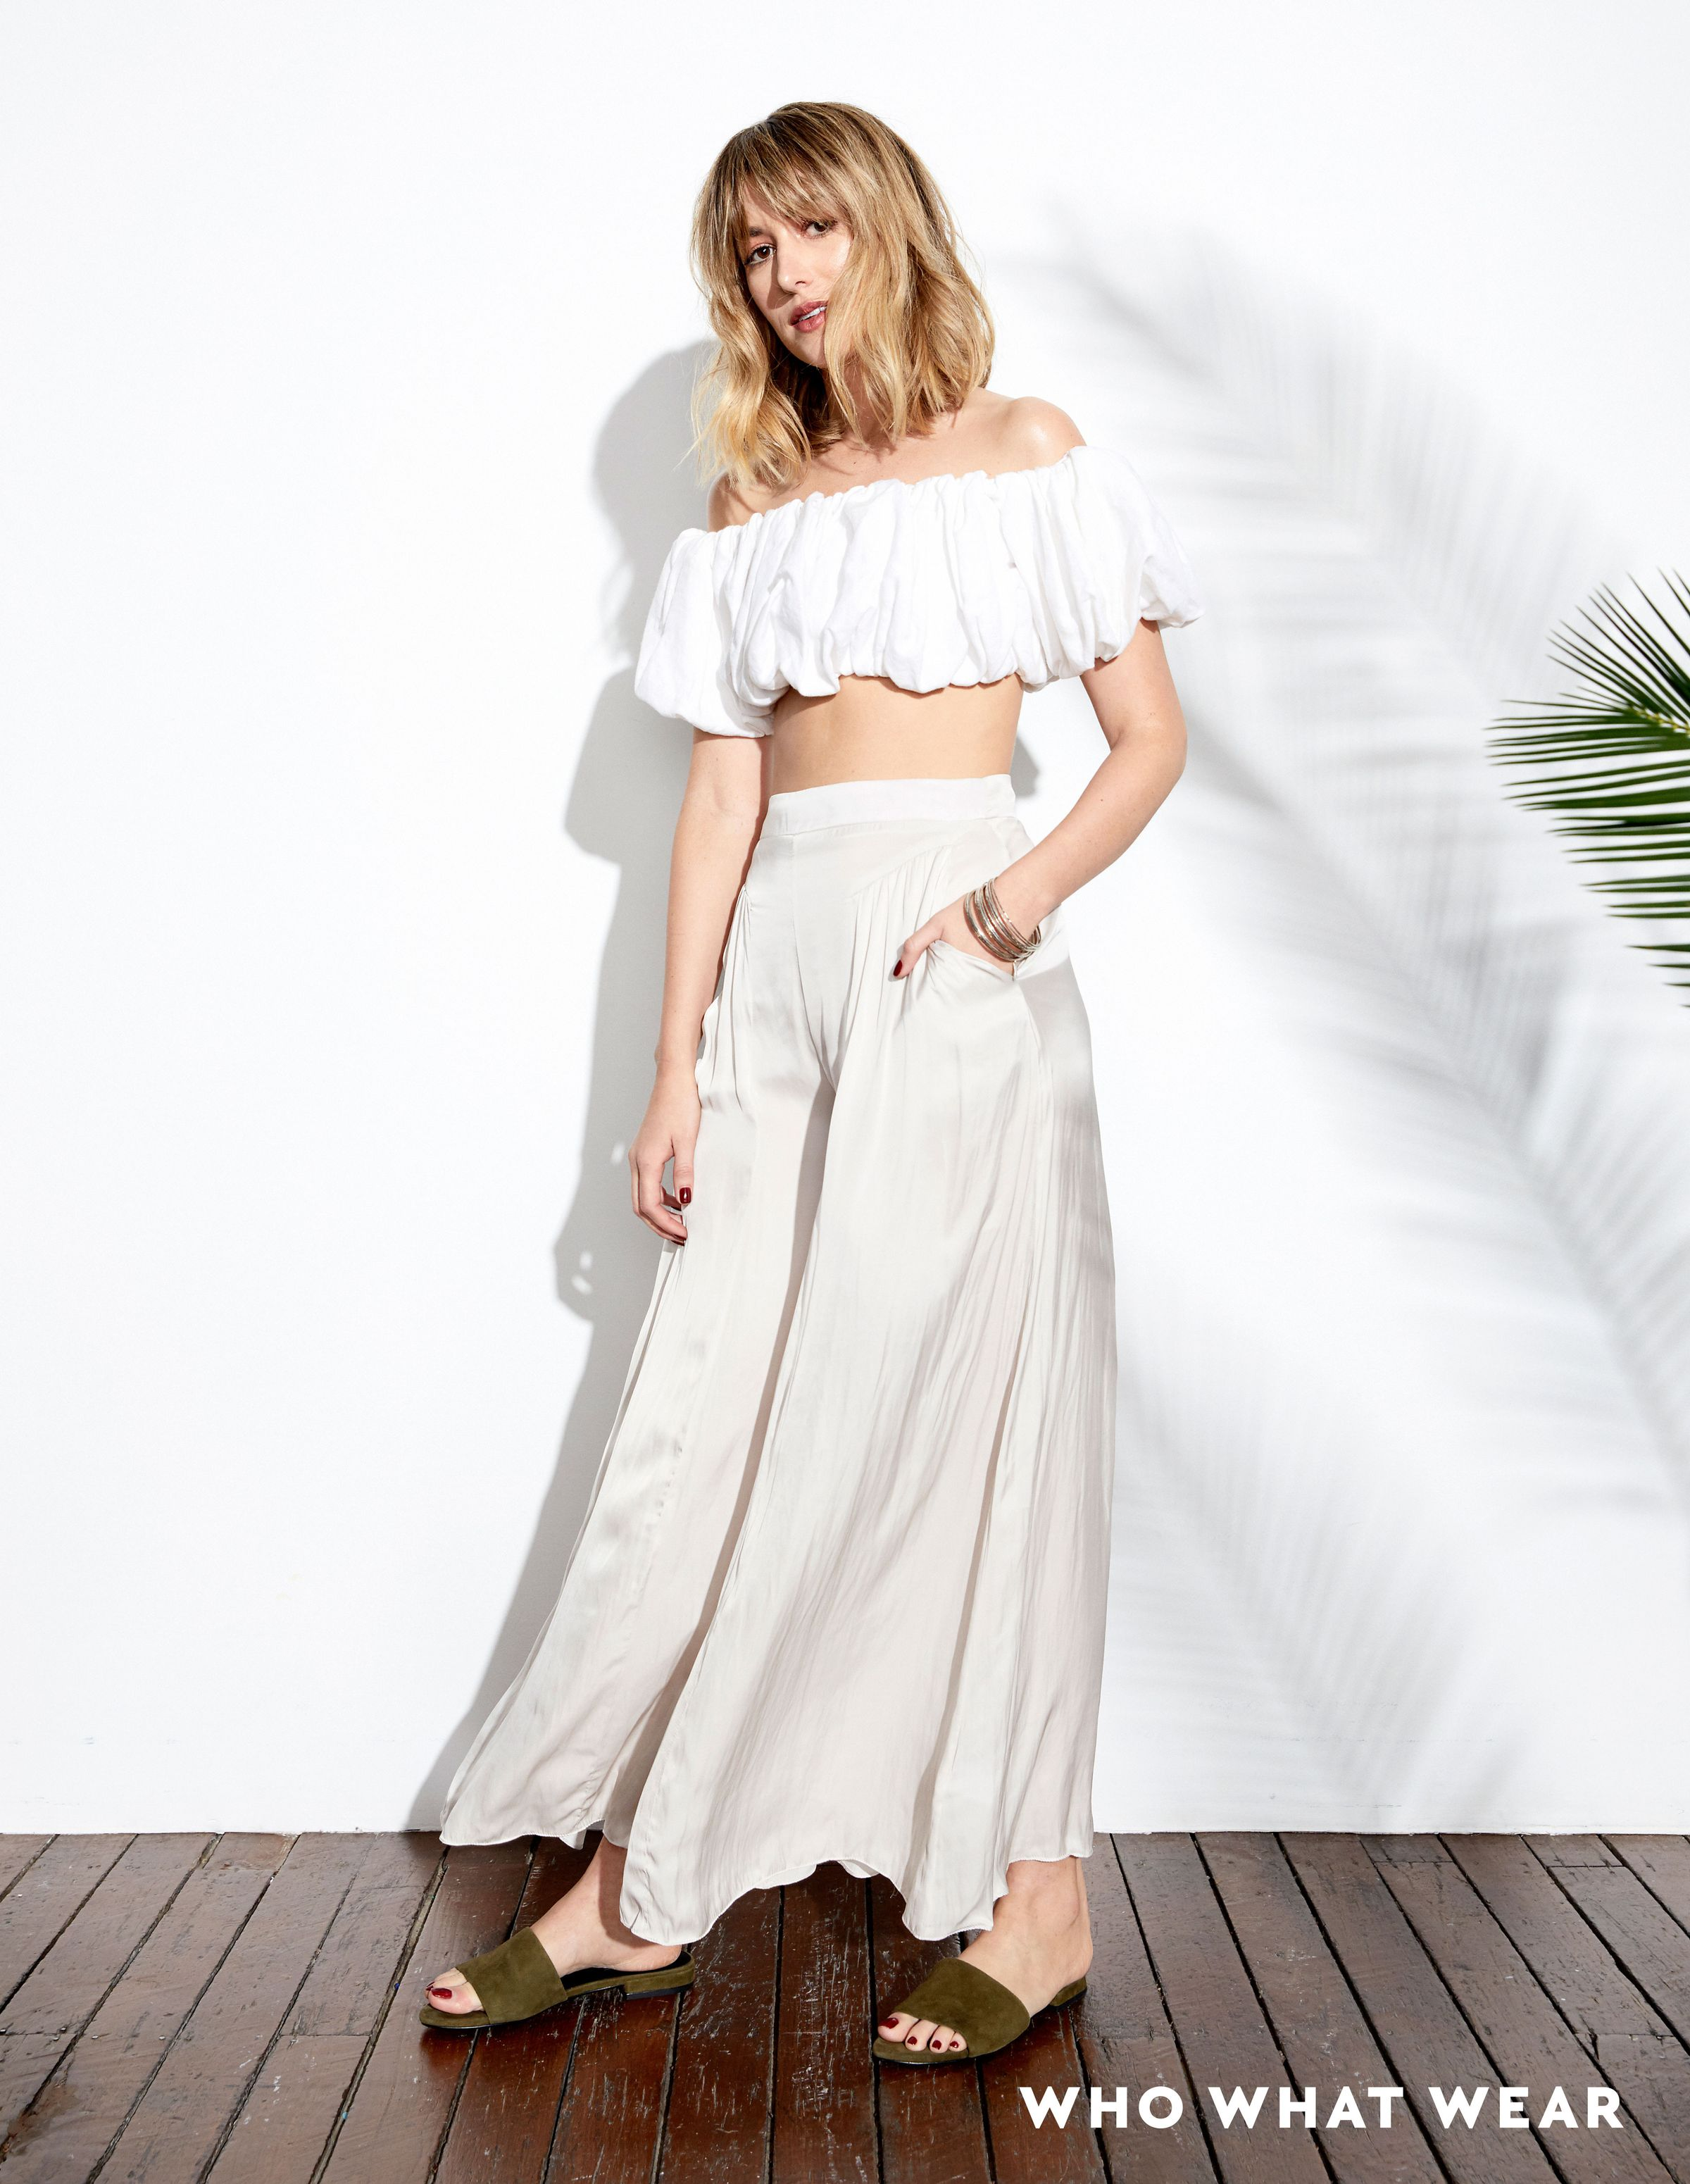 Pictured: Georgia Alice Crop Top (coming soon), Morrison Corbett Pants ($299), Susan Driver Bangles (coming soon), Senso Zulu Mules ($179). WWW: What's your vision...